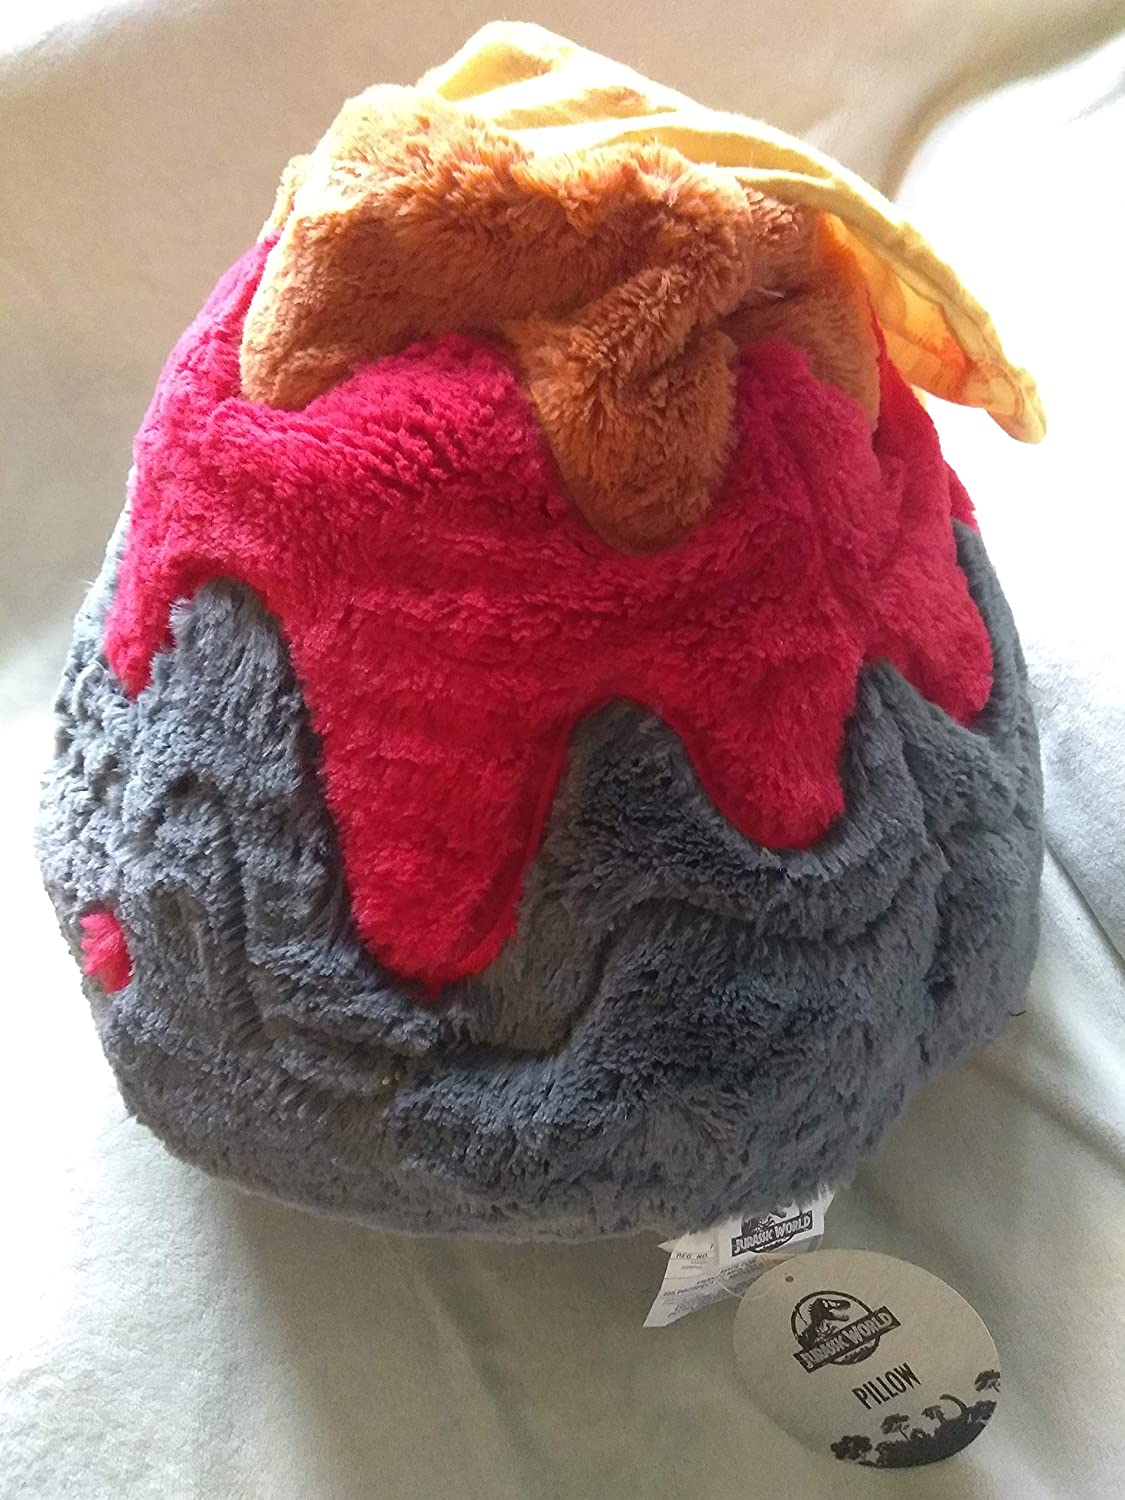 Pretend That Dinosaurs are Running from Erupting Volcano Rare Giant Plush 14 Inches Tall Jurassic World Super Soft Pillow Erupting Volcano from Jurassic World 2 by Franco